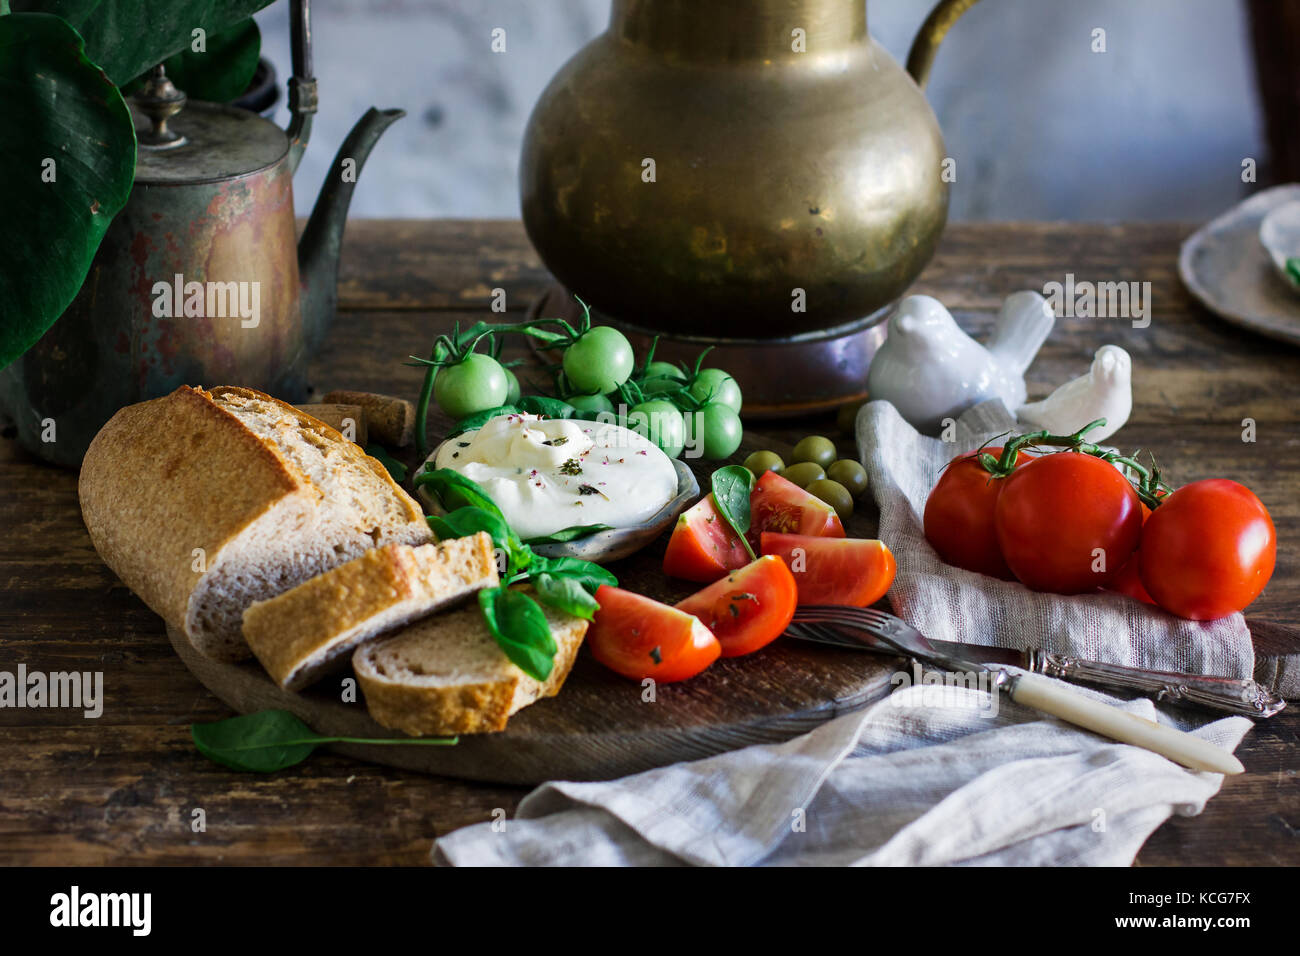 Fresh burrata cheese with tomatoes, Basil and multi-grain bread on the old wooden table. Vegetarian food - Stock Image